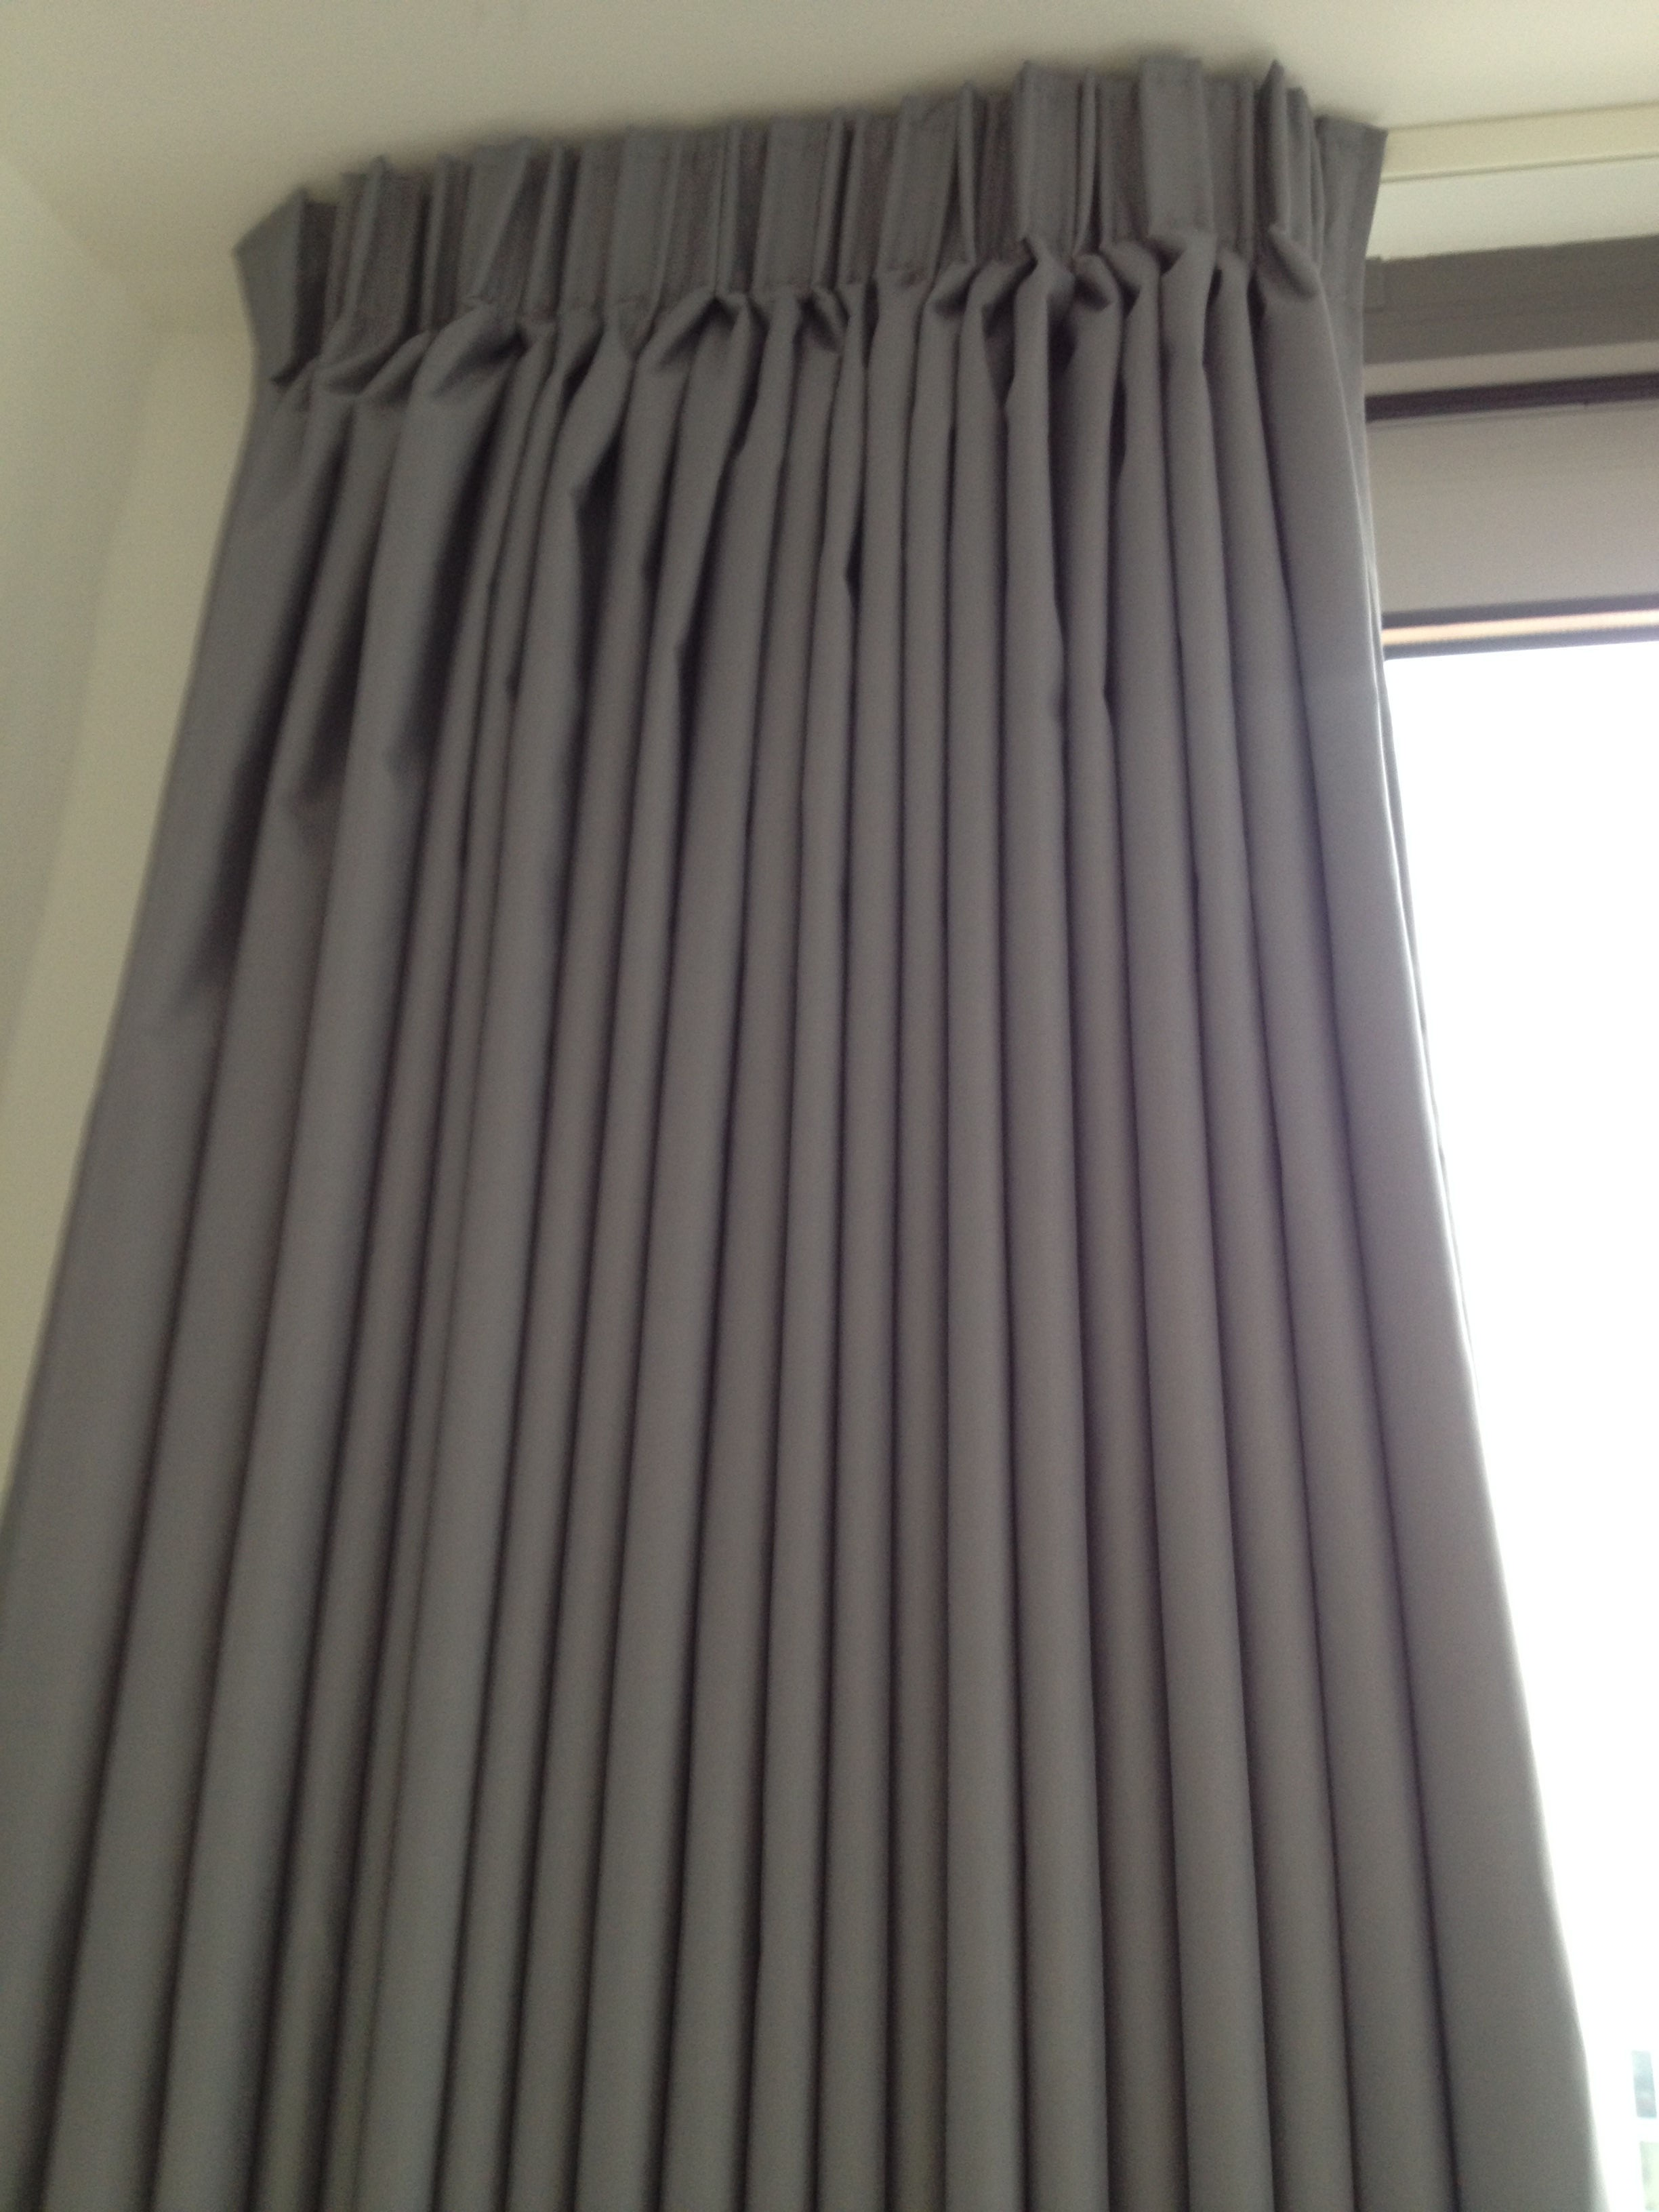 dubai decoration hotelcurtains drapes factory direct interior in curtains and hotel